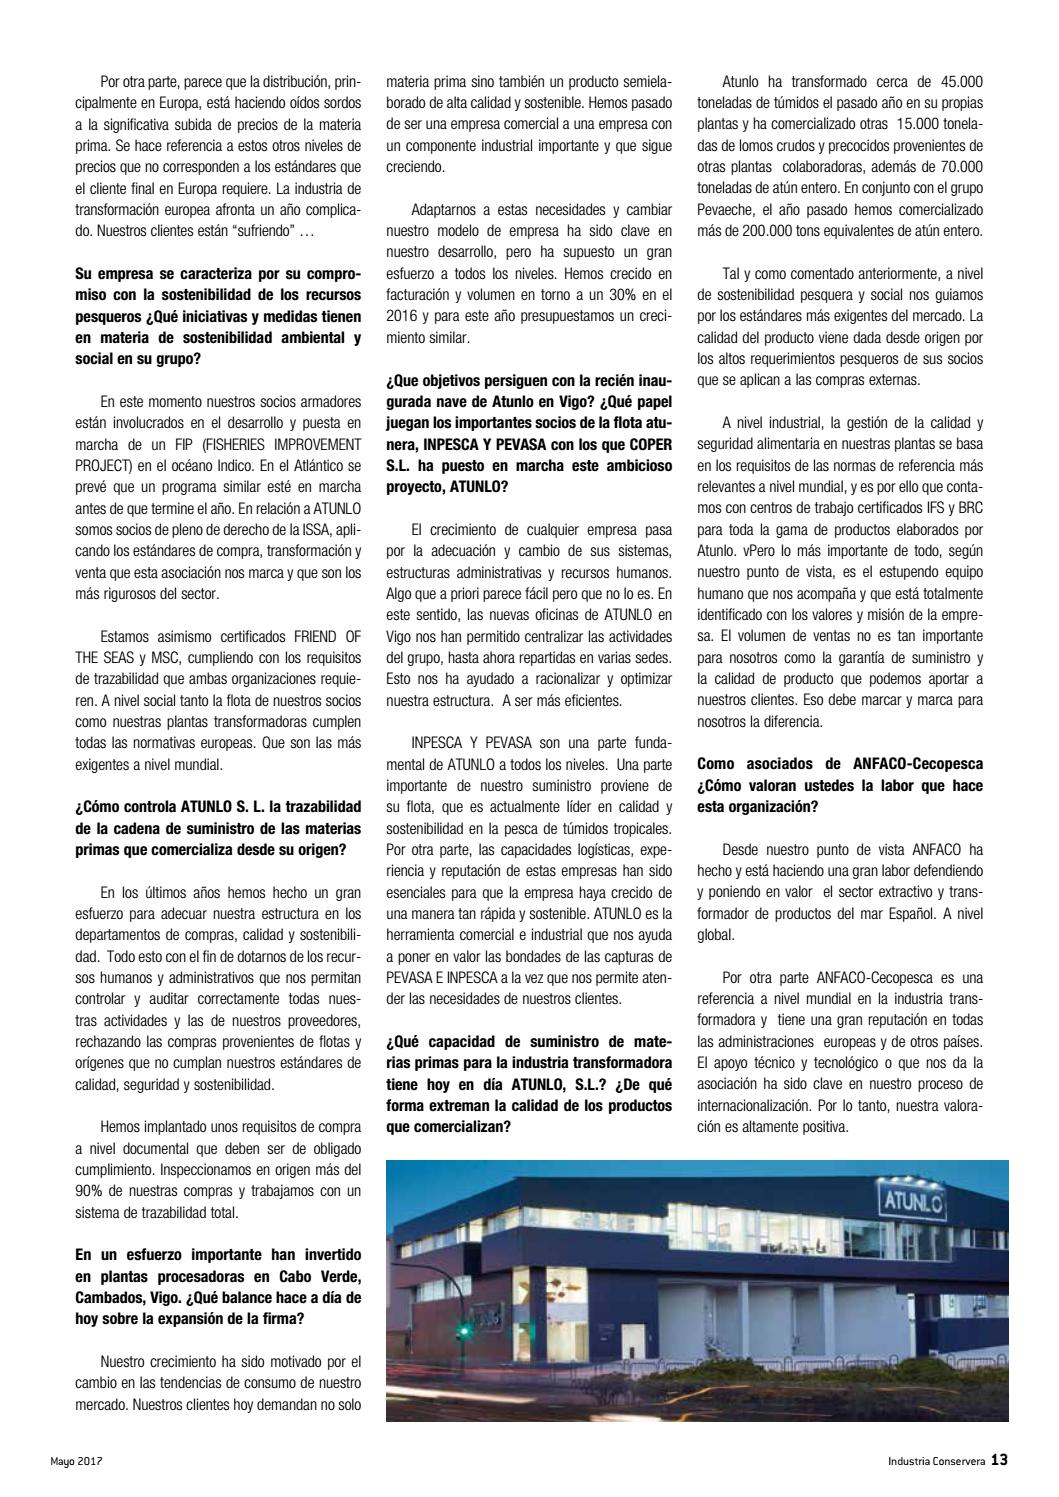 Revista Industria Conservera nº122 by ANFACO - issuu